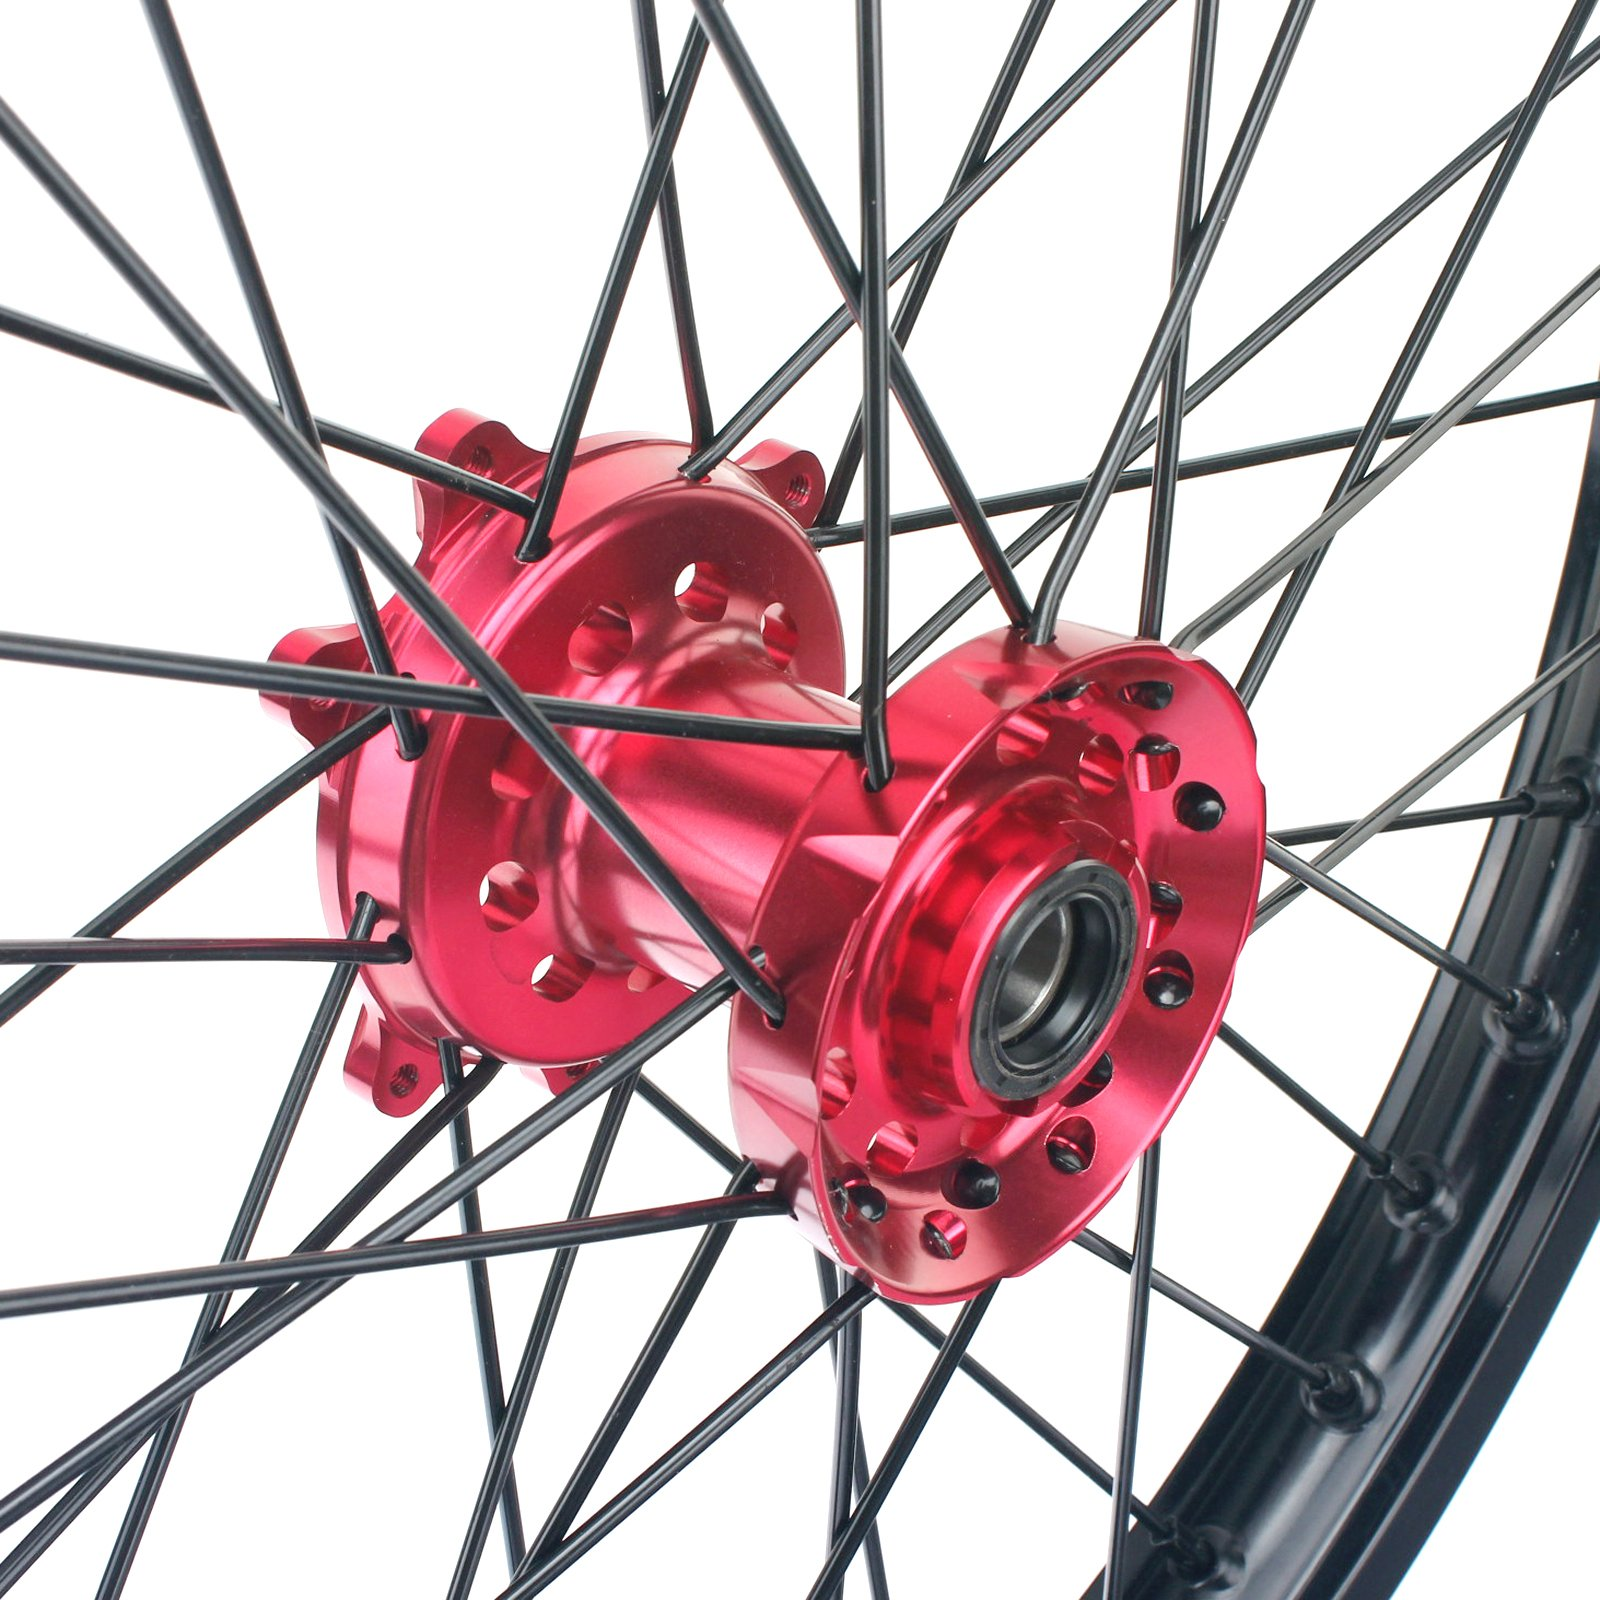 TARAZON 21'' 18'' Off-road Complete Wheel Set Rims Spokes Red Hubs for Honda CRF250R 04-13 CRF450R 04-12 CRF 250X 450X 04-16 by TARAZON (Image #6)